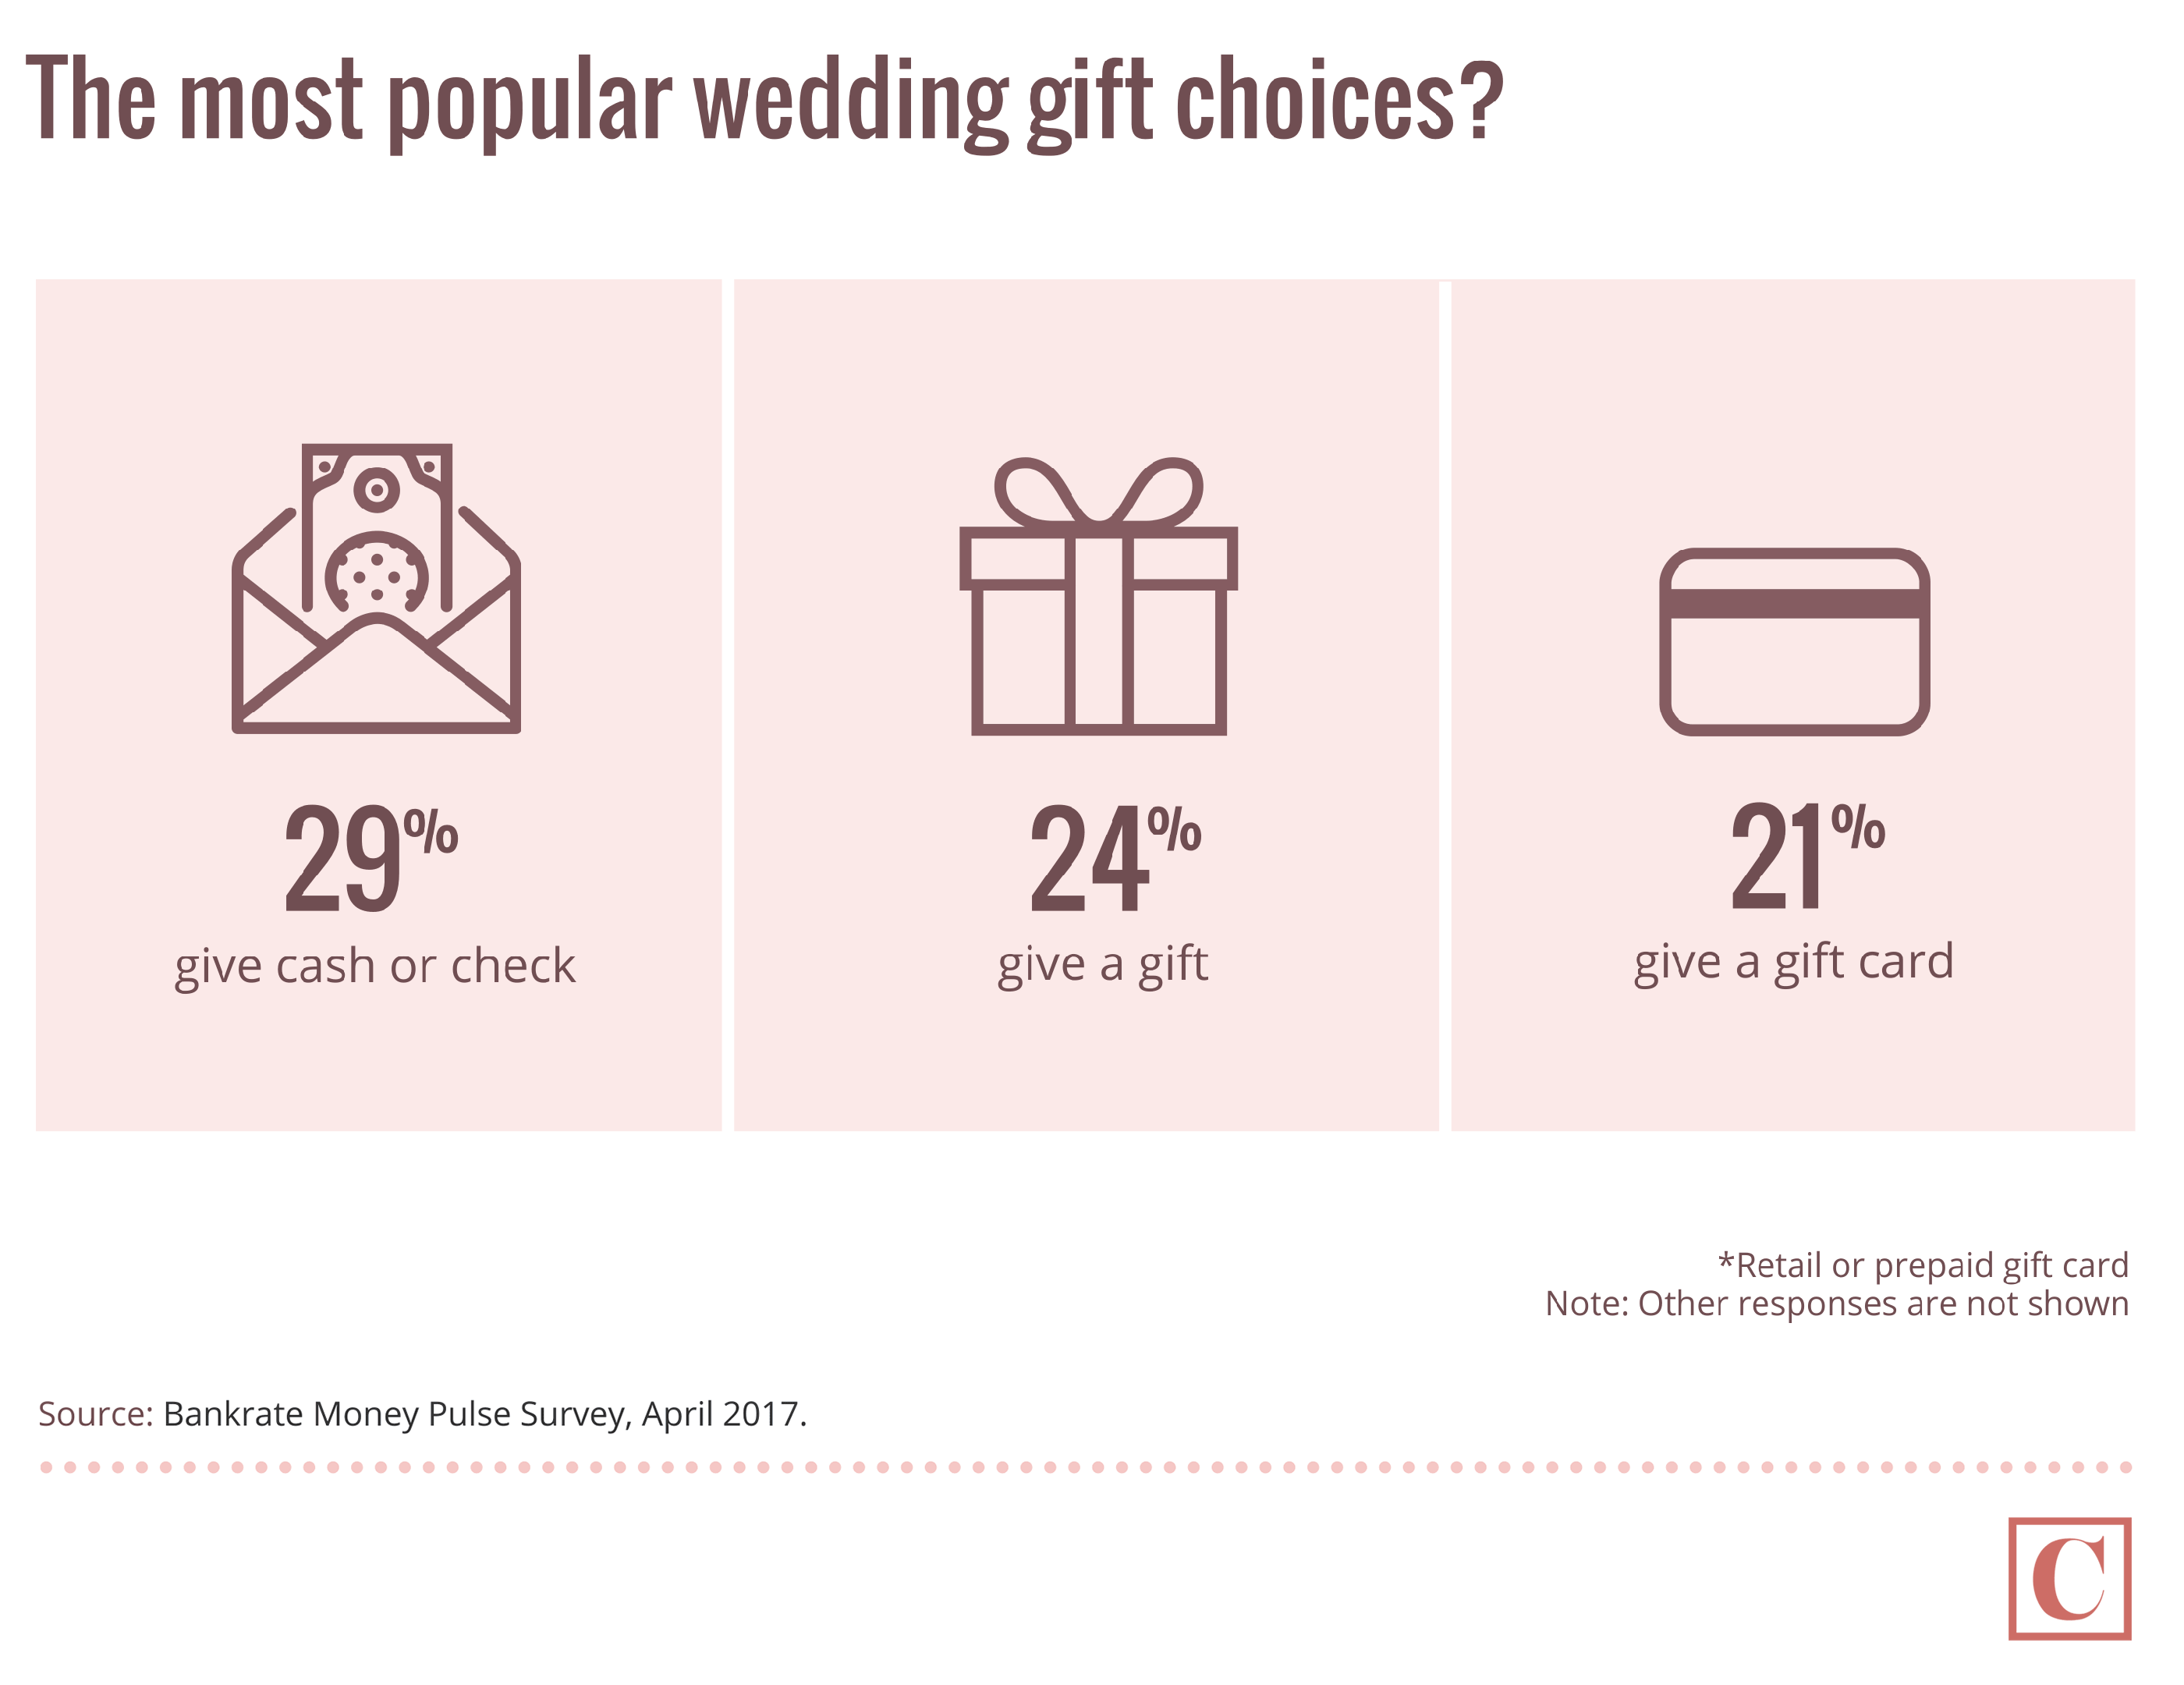 Most popular wedding gift choices